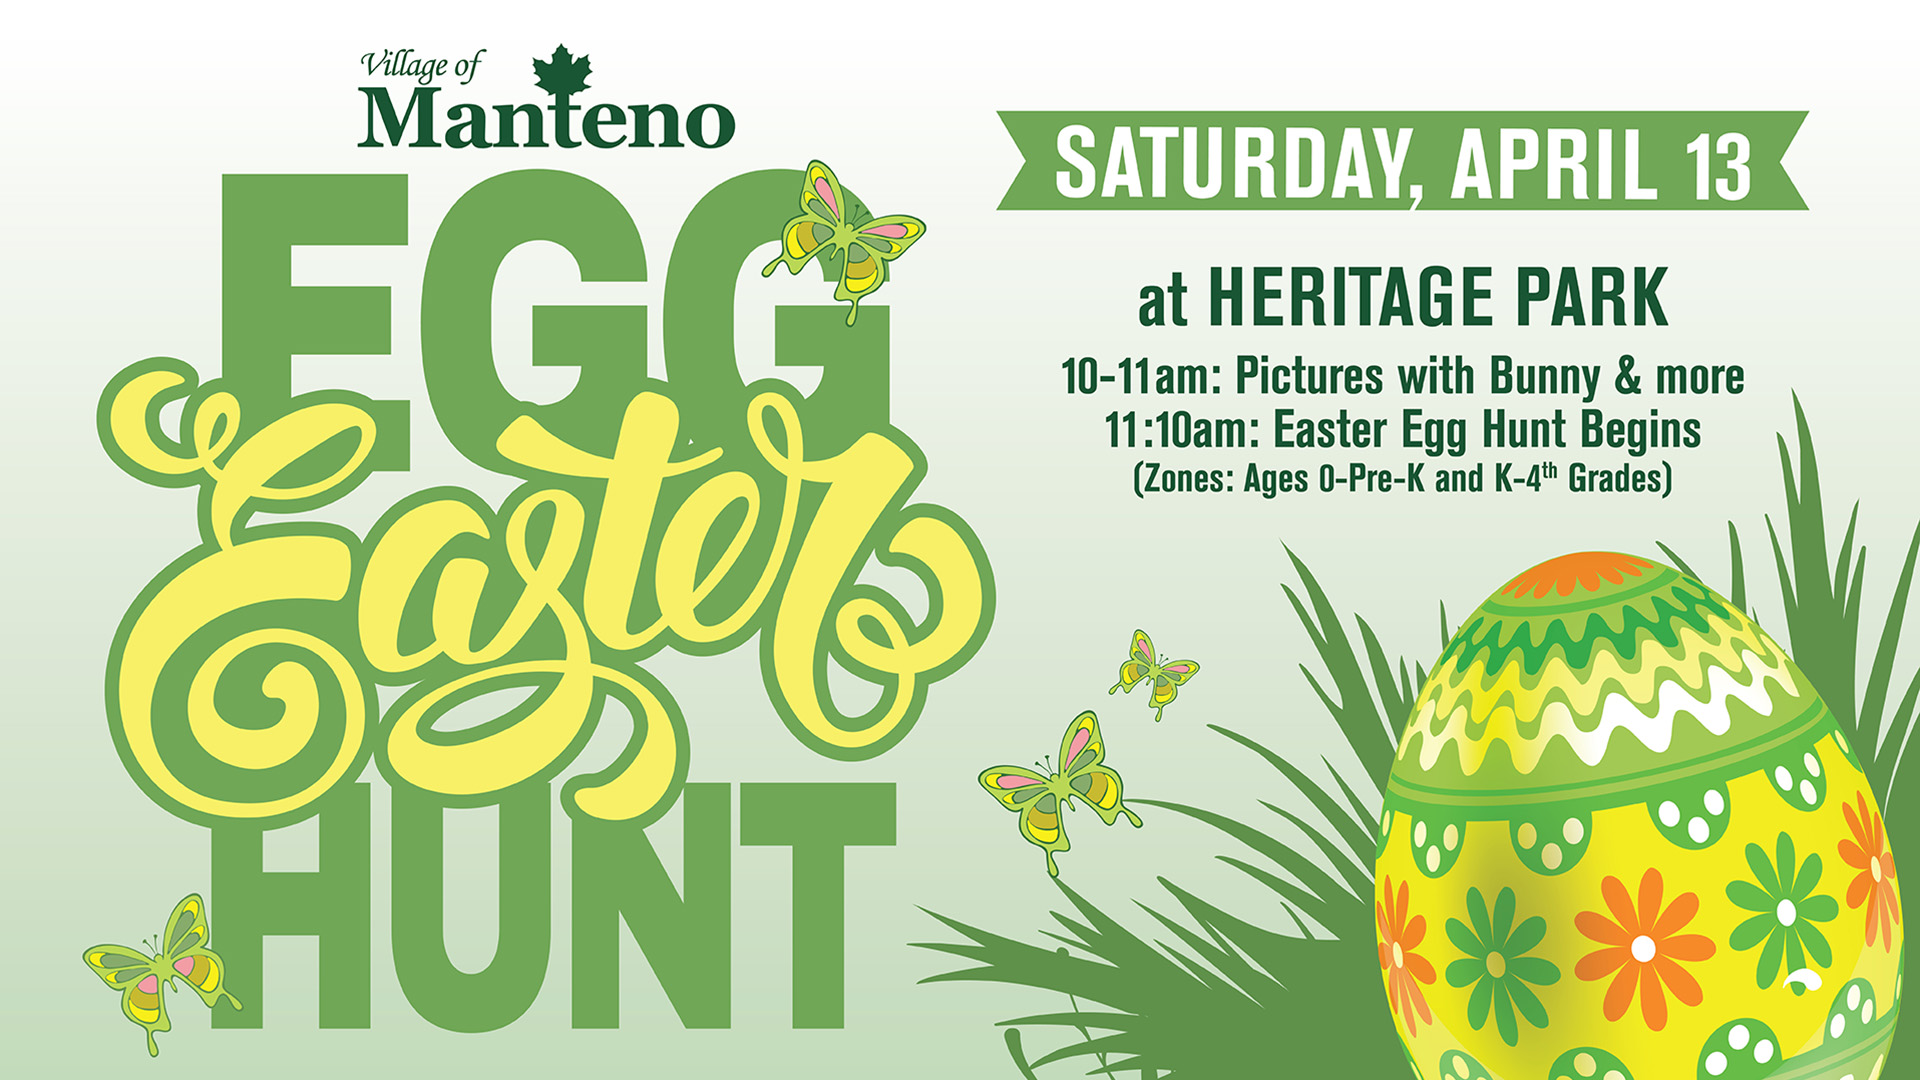 Village of Manteno Easter Egg Hunt